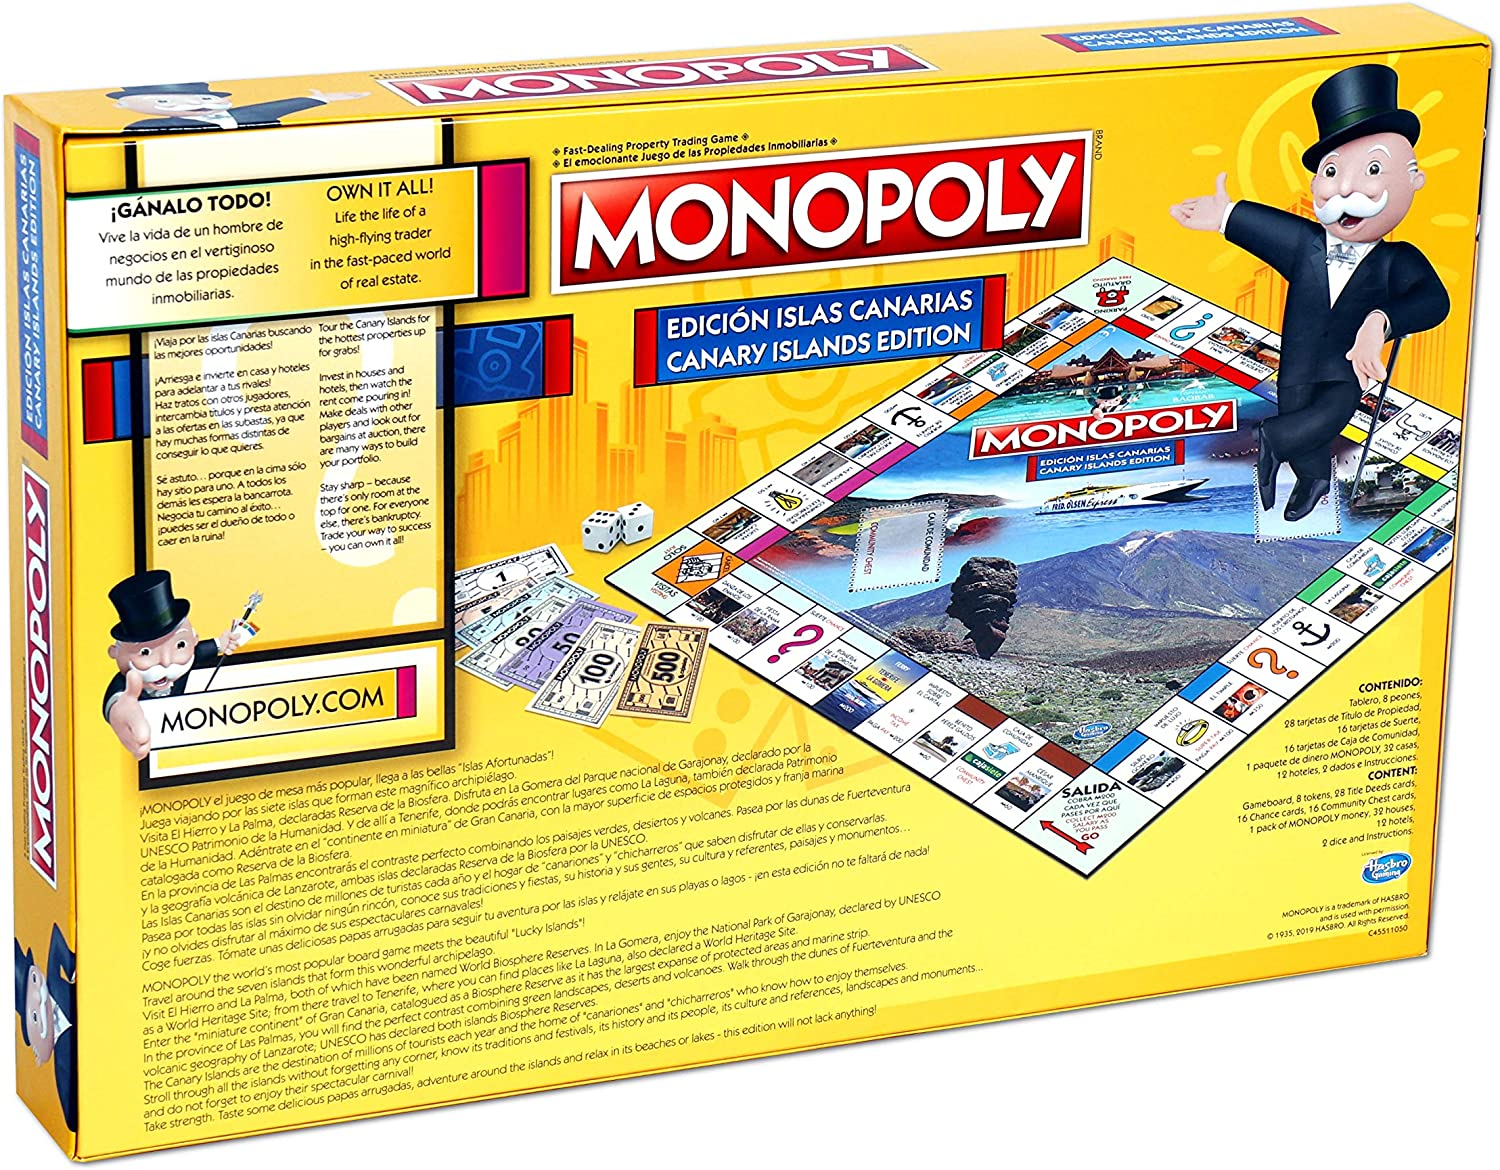 Amazon.com: Monopoly Canary Islands: Toys & Games